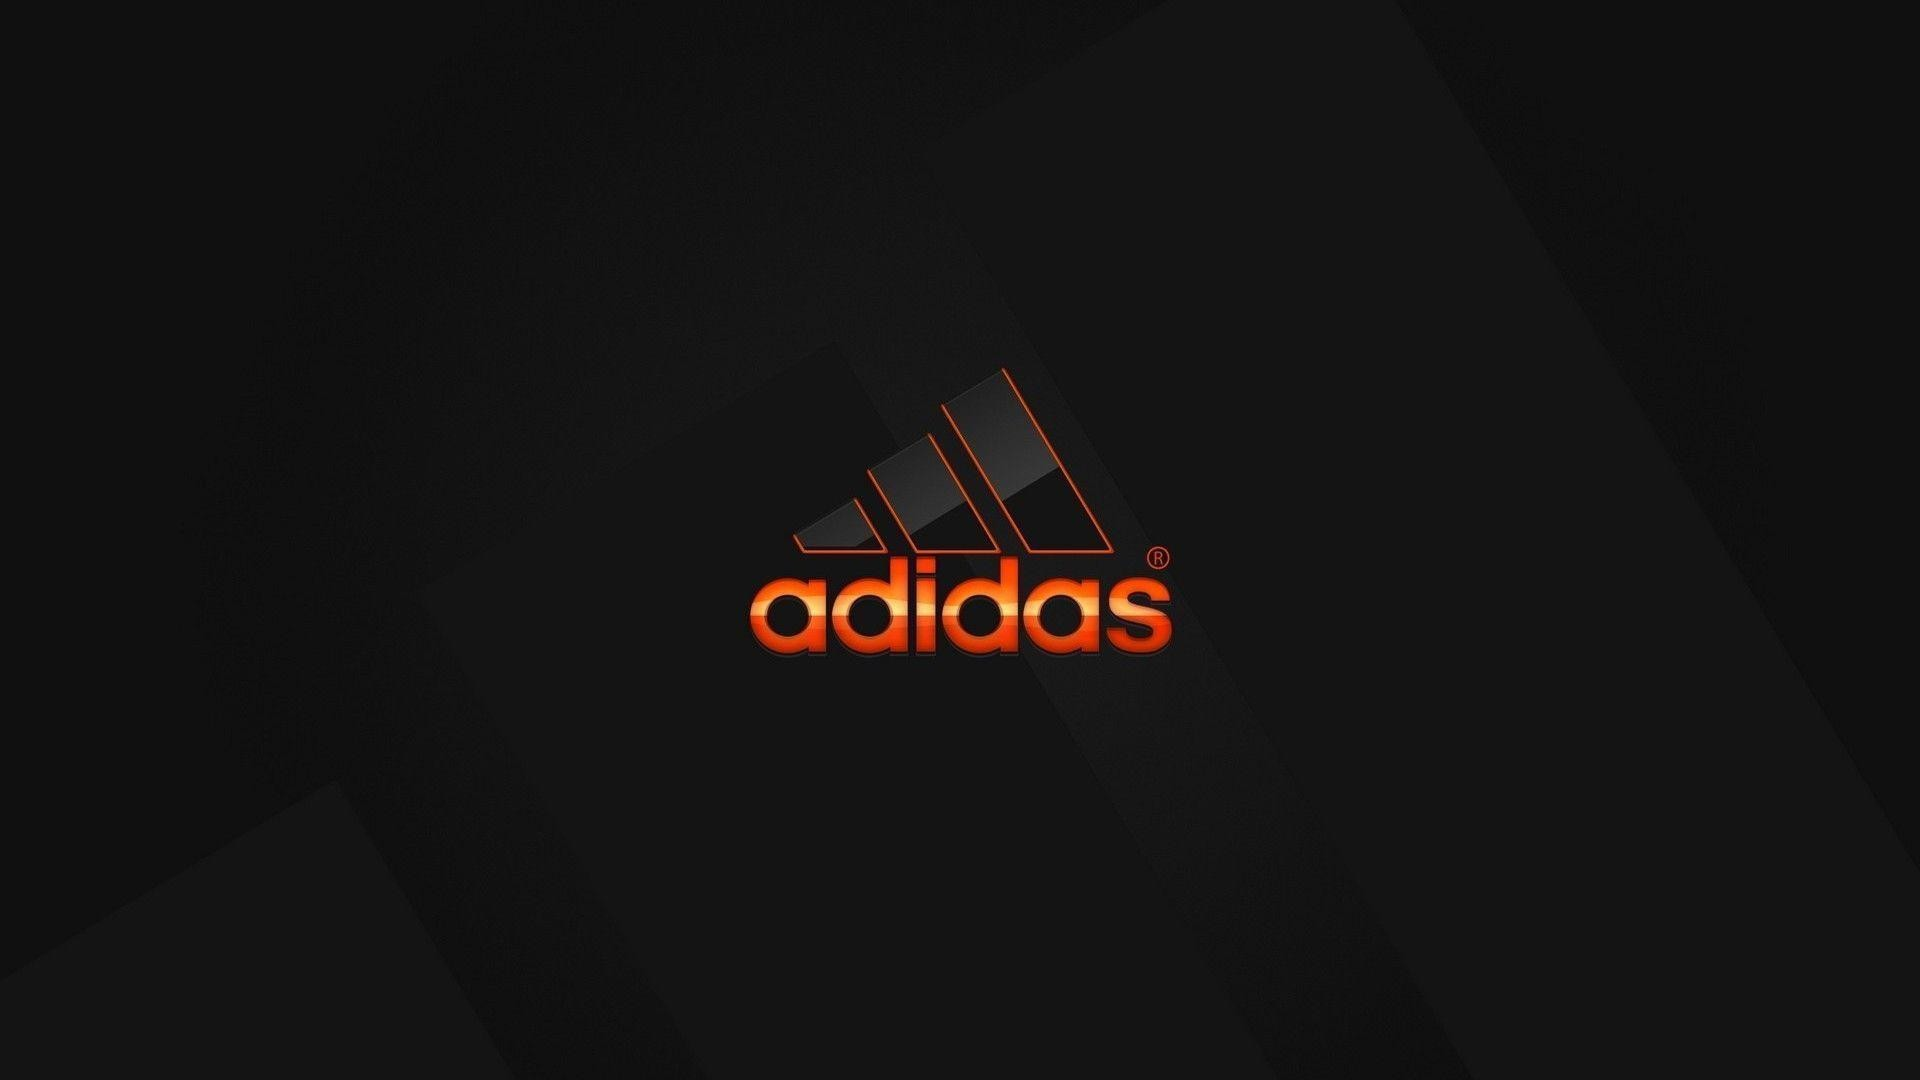 The Best 3d Wallpapers In The World Adidas 2018 Wallpaper 75 Images